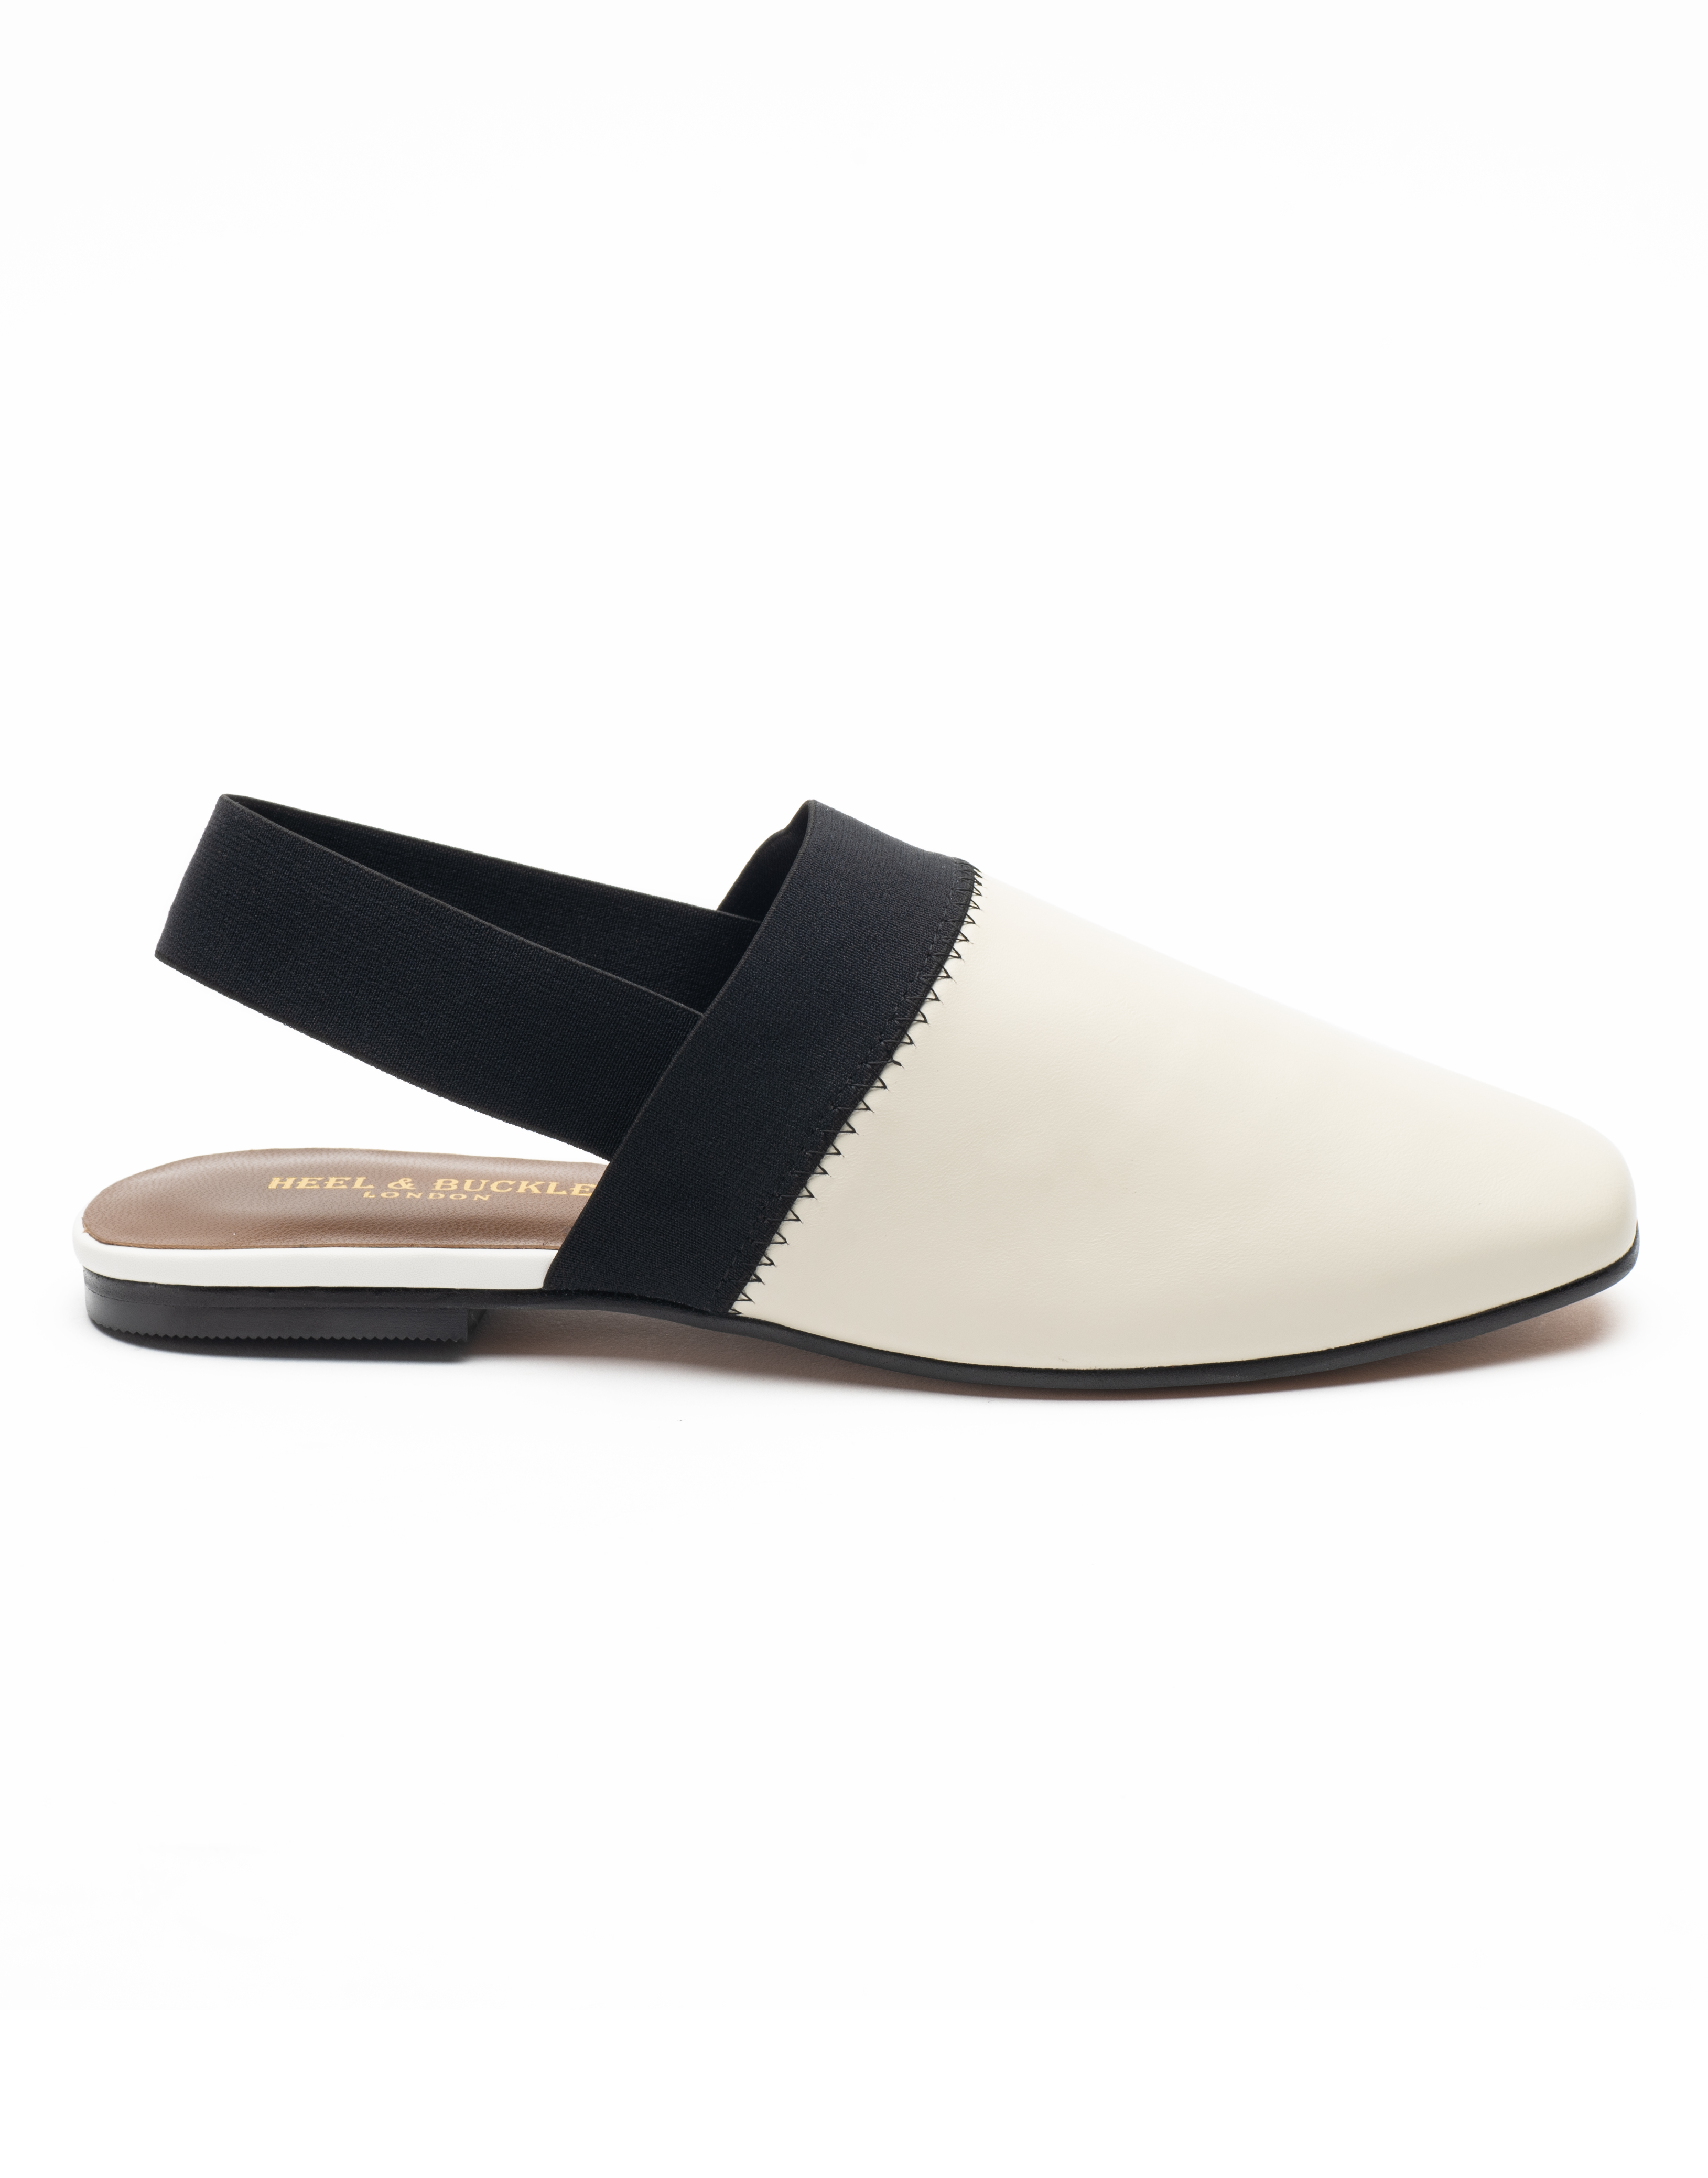 Heel _ Buckle London-Shoes-R178-1-Closed flats-White-1